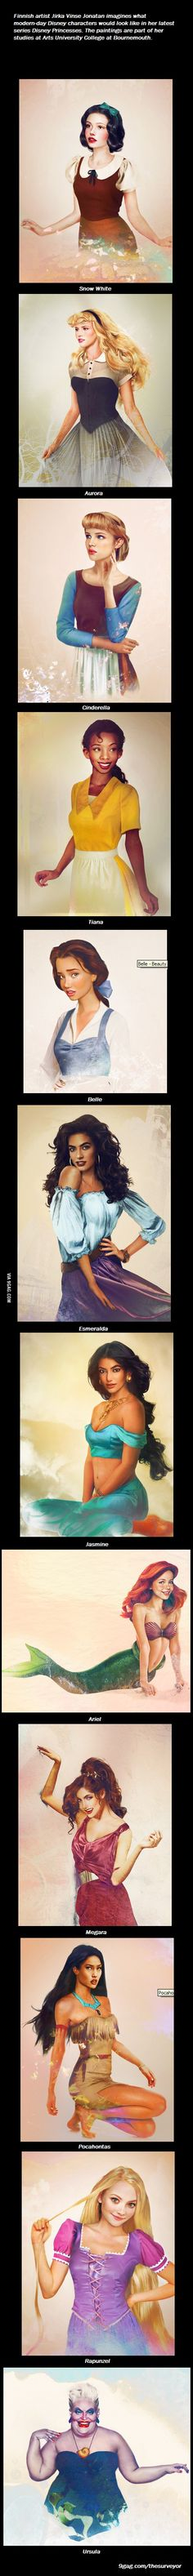 Disney Princesses - How would they look in real life.